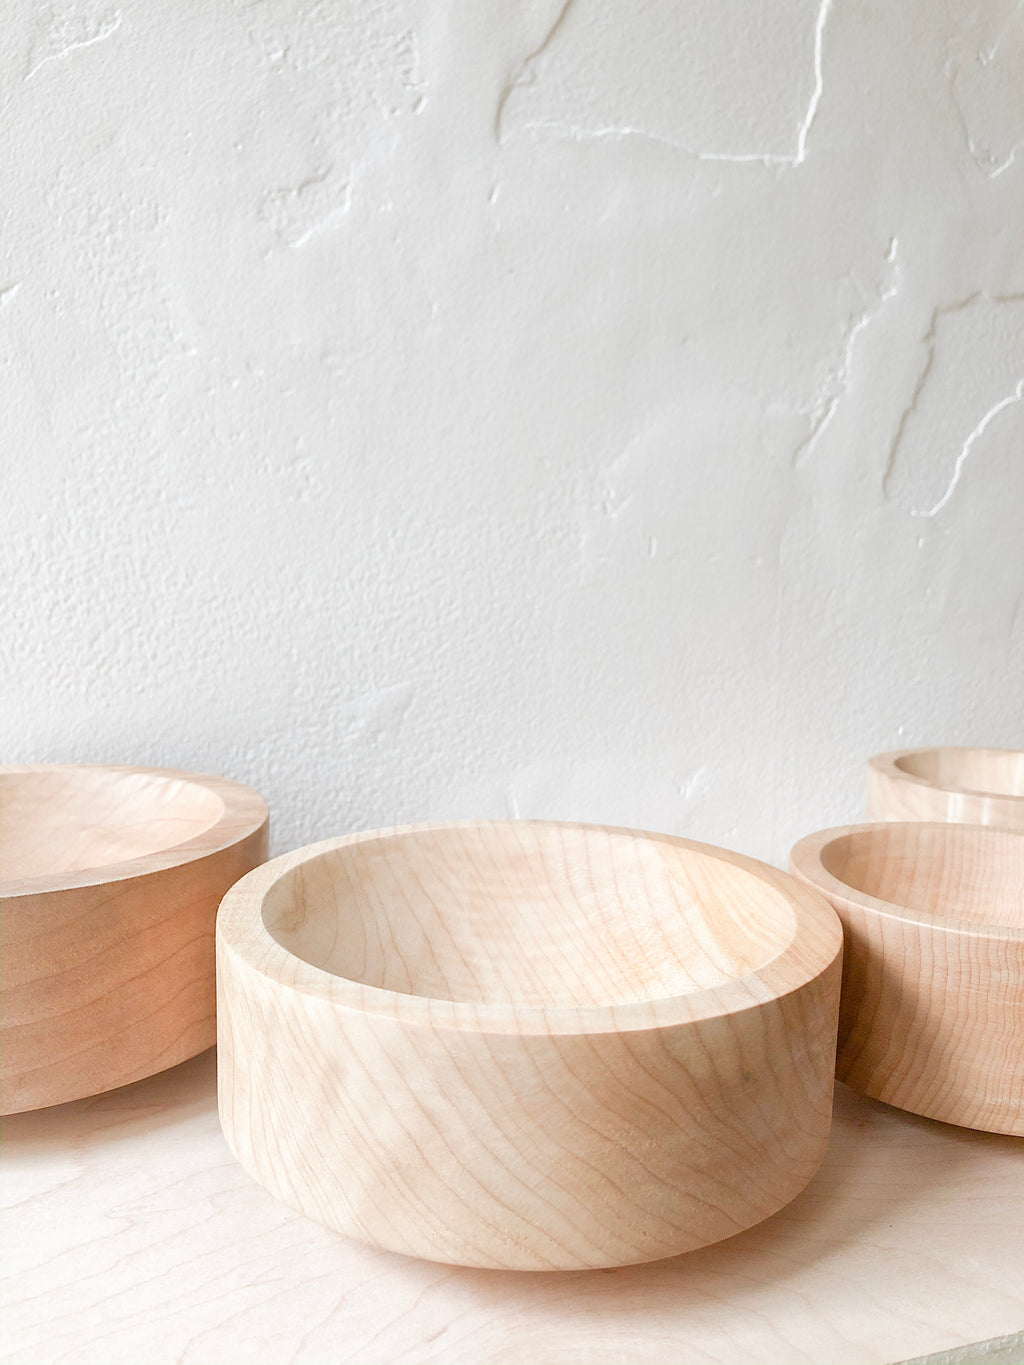 MEDIUM MAPLE POT